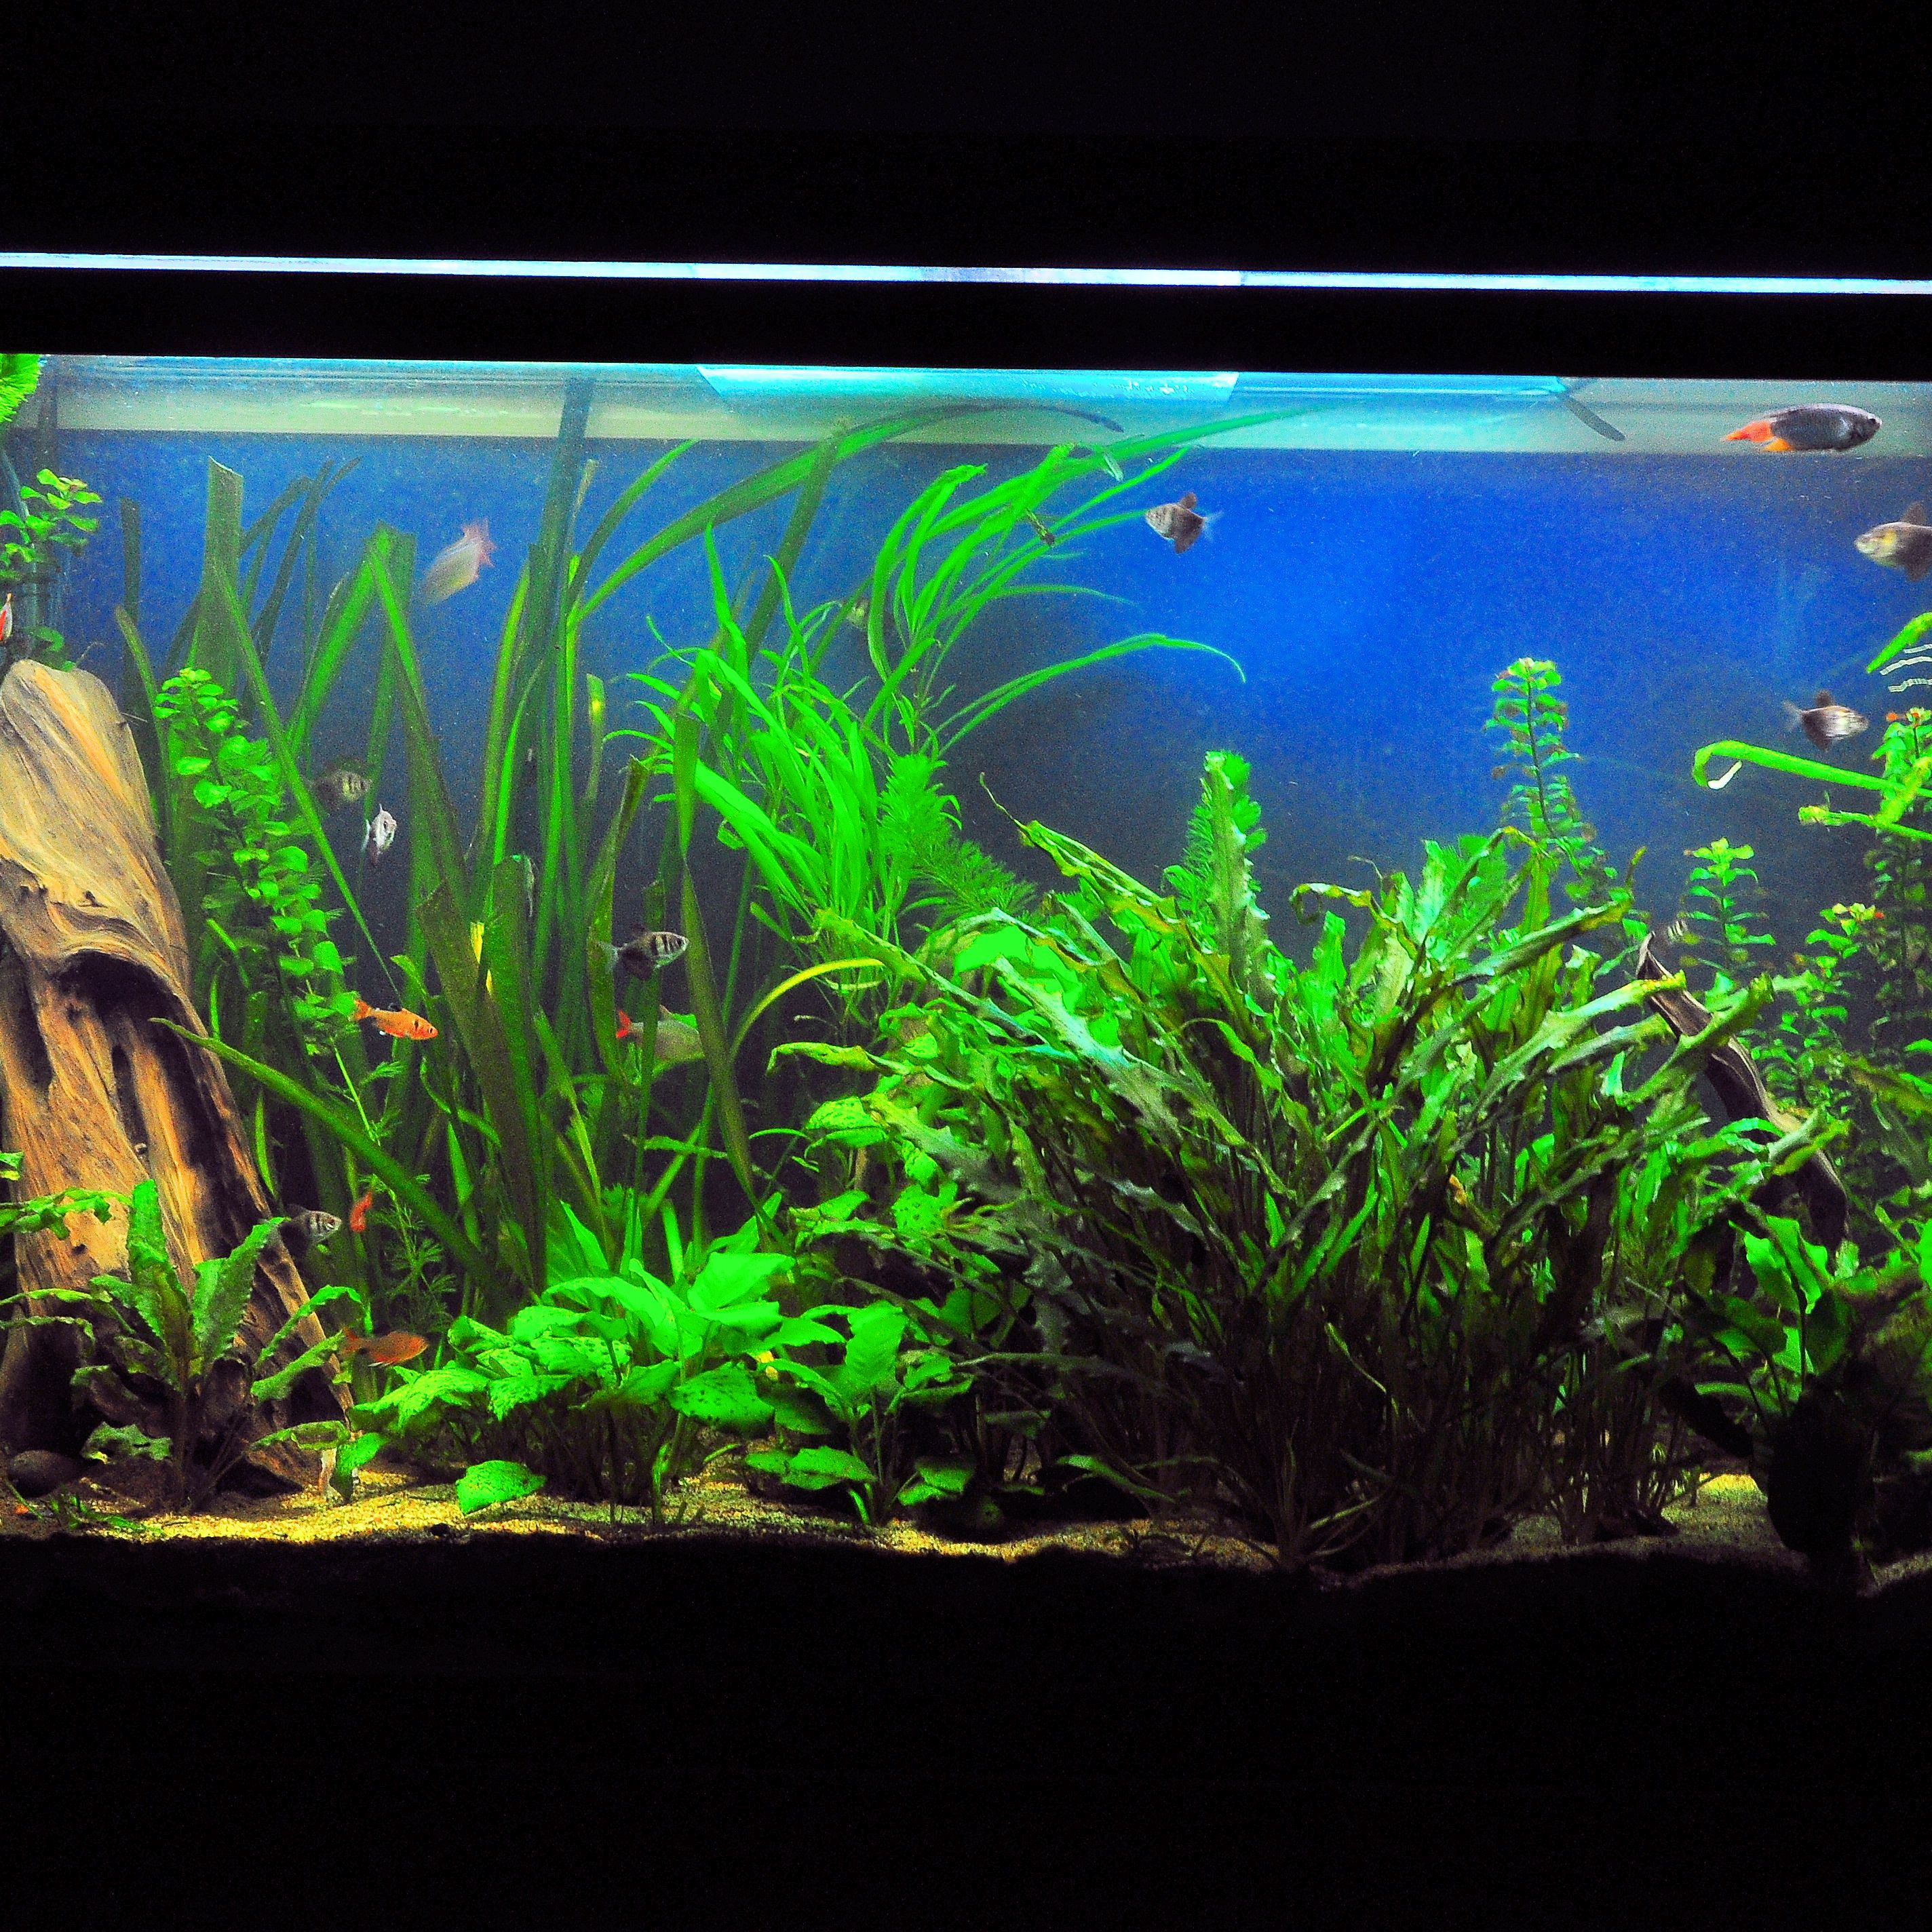 Preferred Tank Levels For Community Fish Species